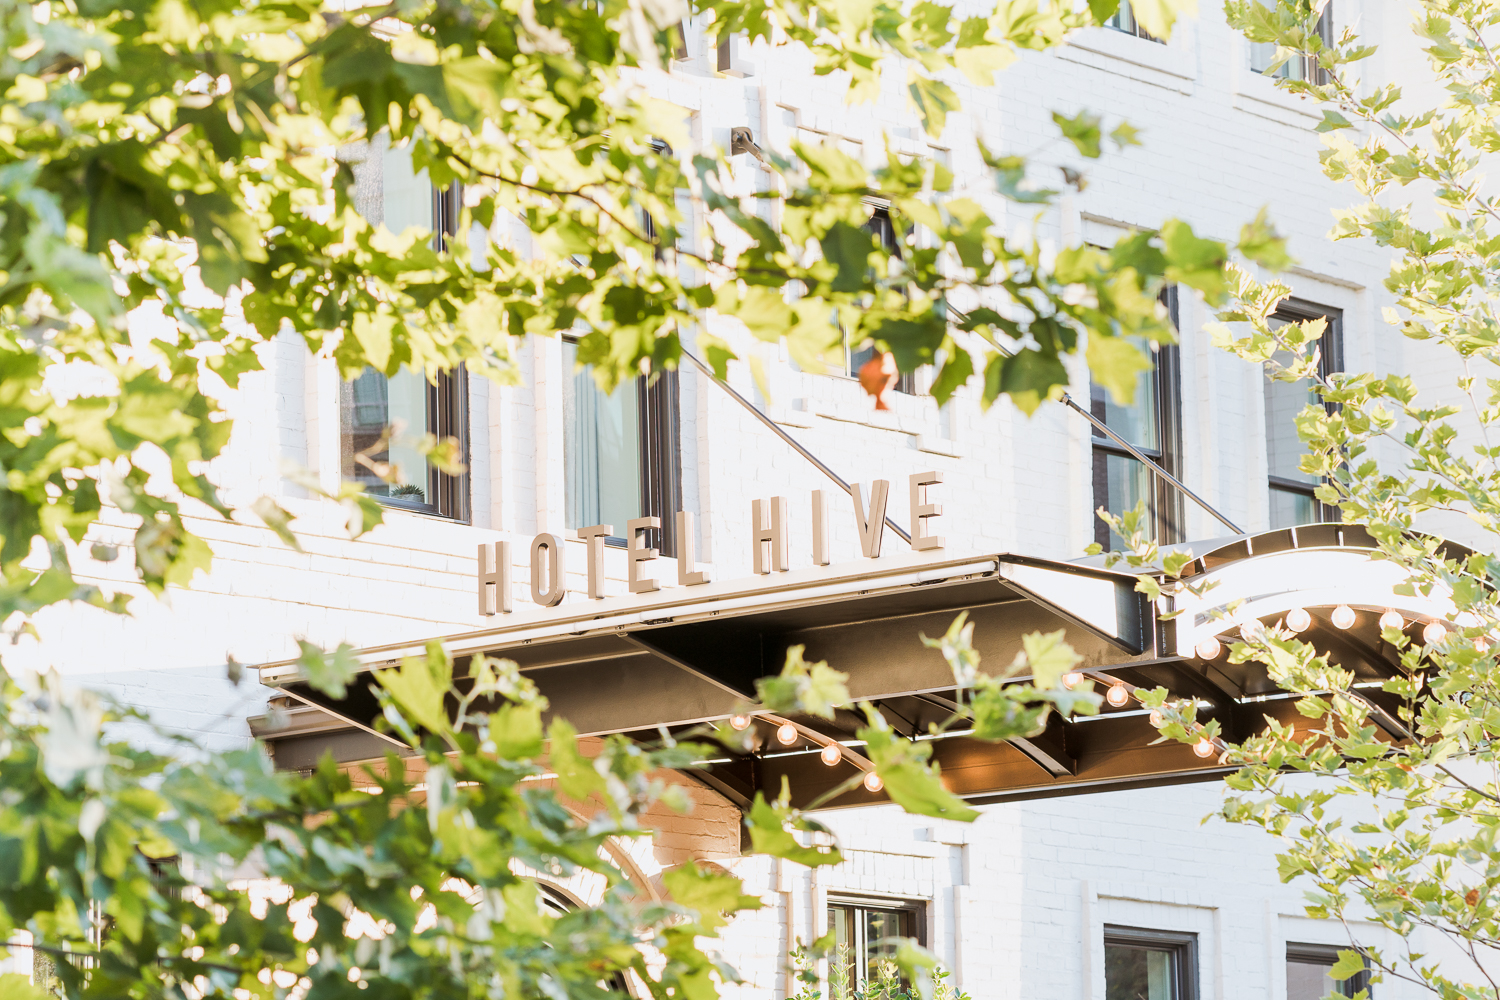 Hotel Hive, in Foggy Bottom, Washington, DC. All photographs in this section were photographed for  Hotel Hive .